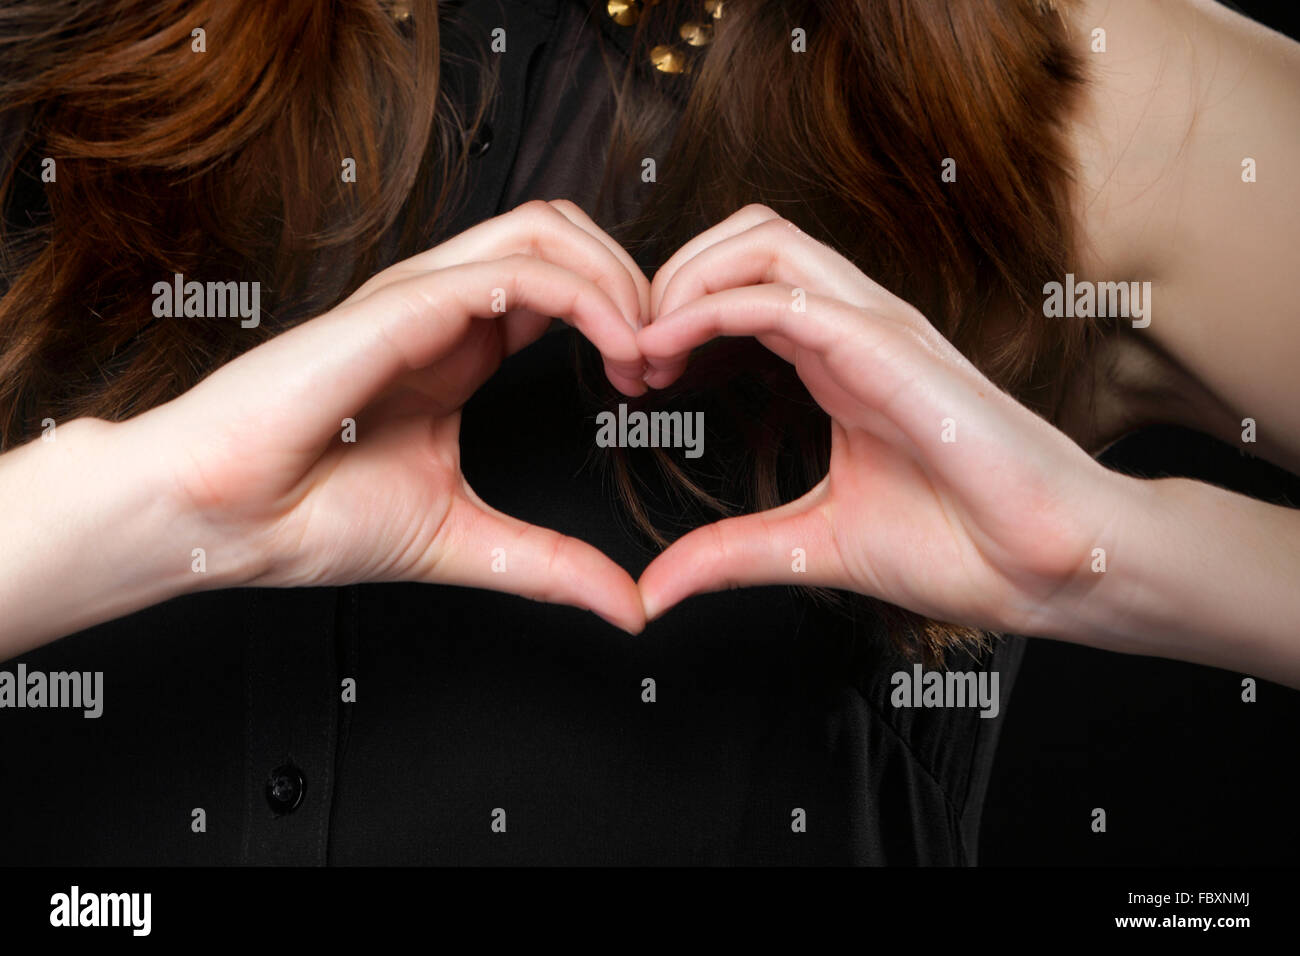 Girl doing heart shape love symbol with her hands Stock Photo ...